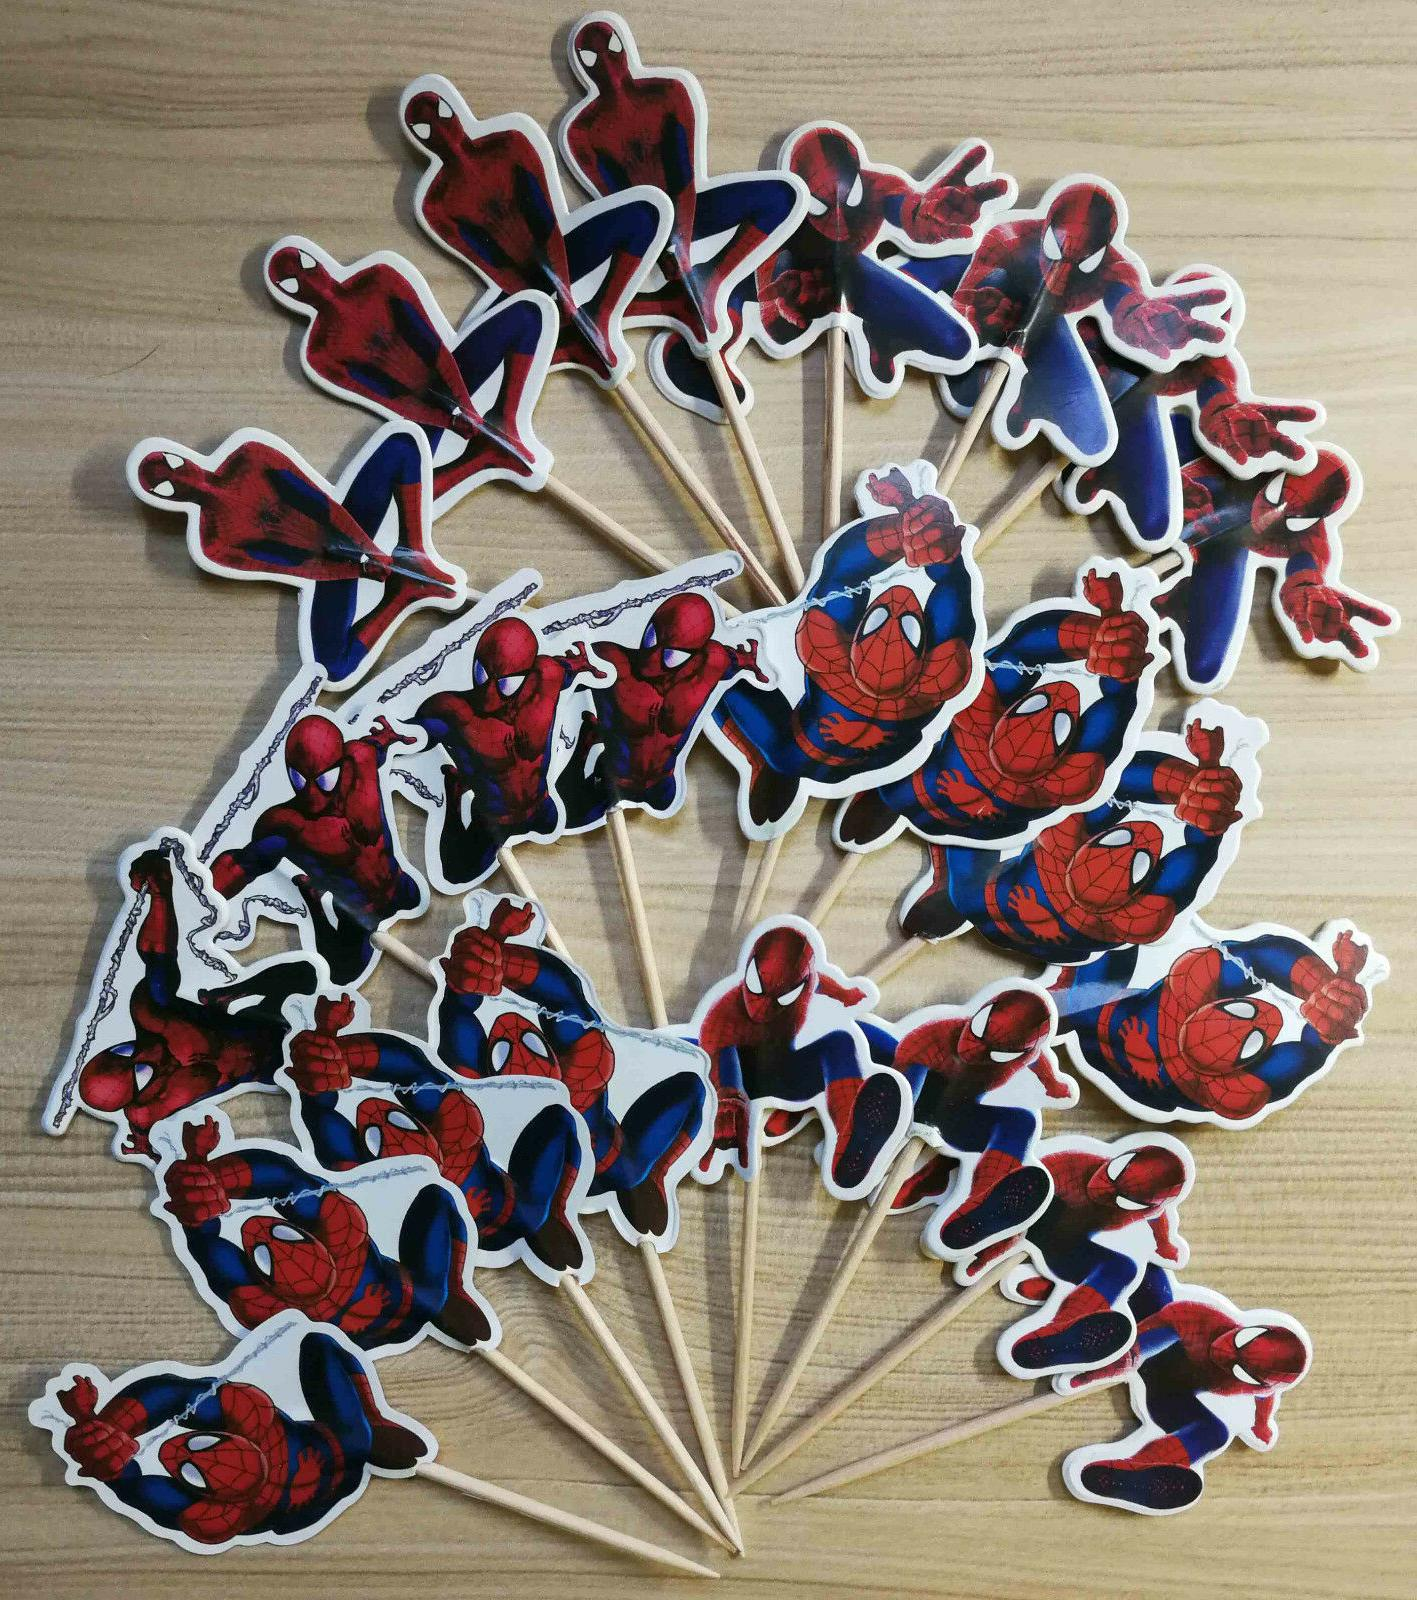 PACK OF 24 SPIDERMAN SUPERHERO CUPCAKE CAKE TOPPER BIRTHDAY